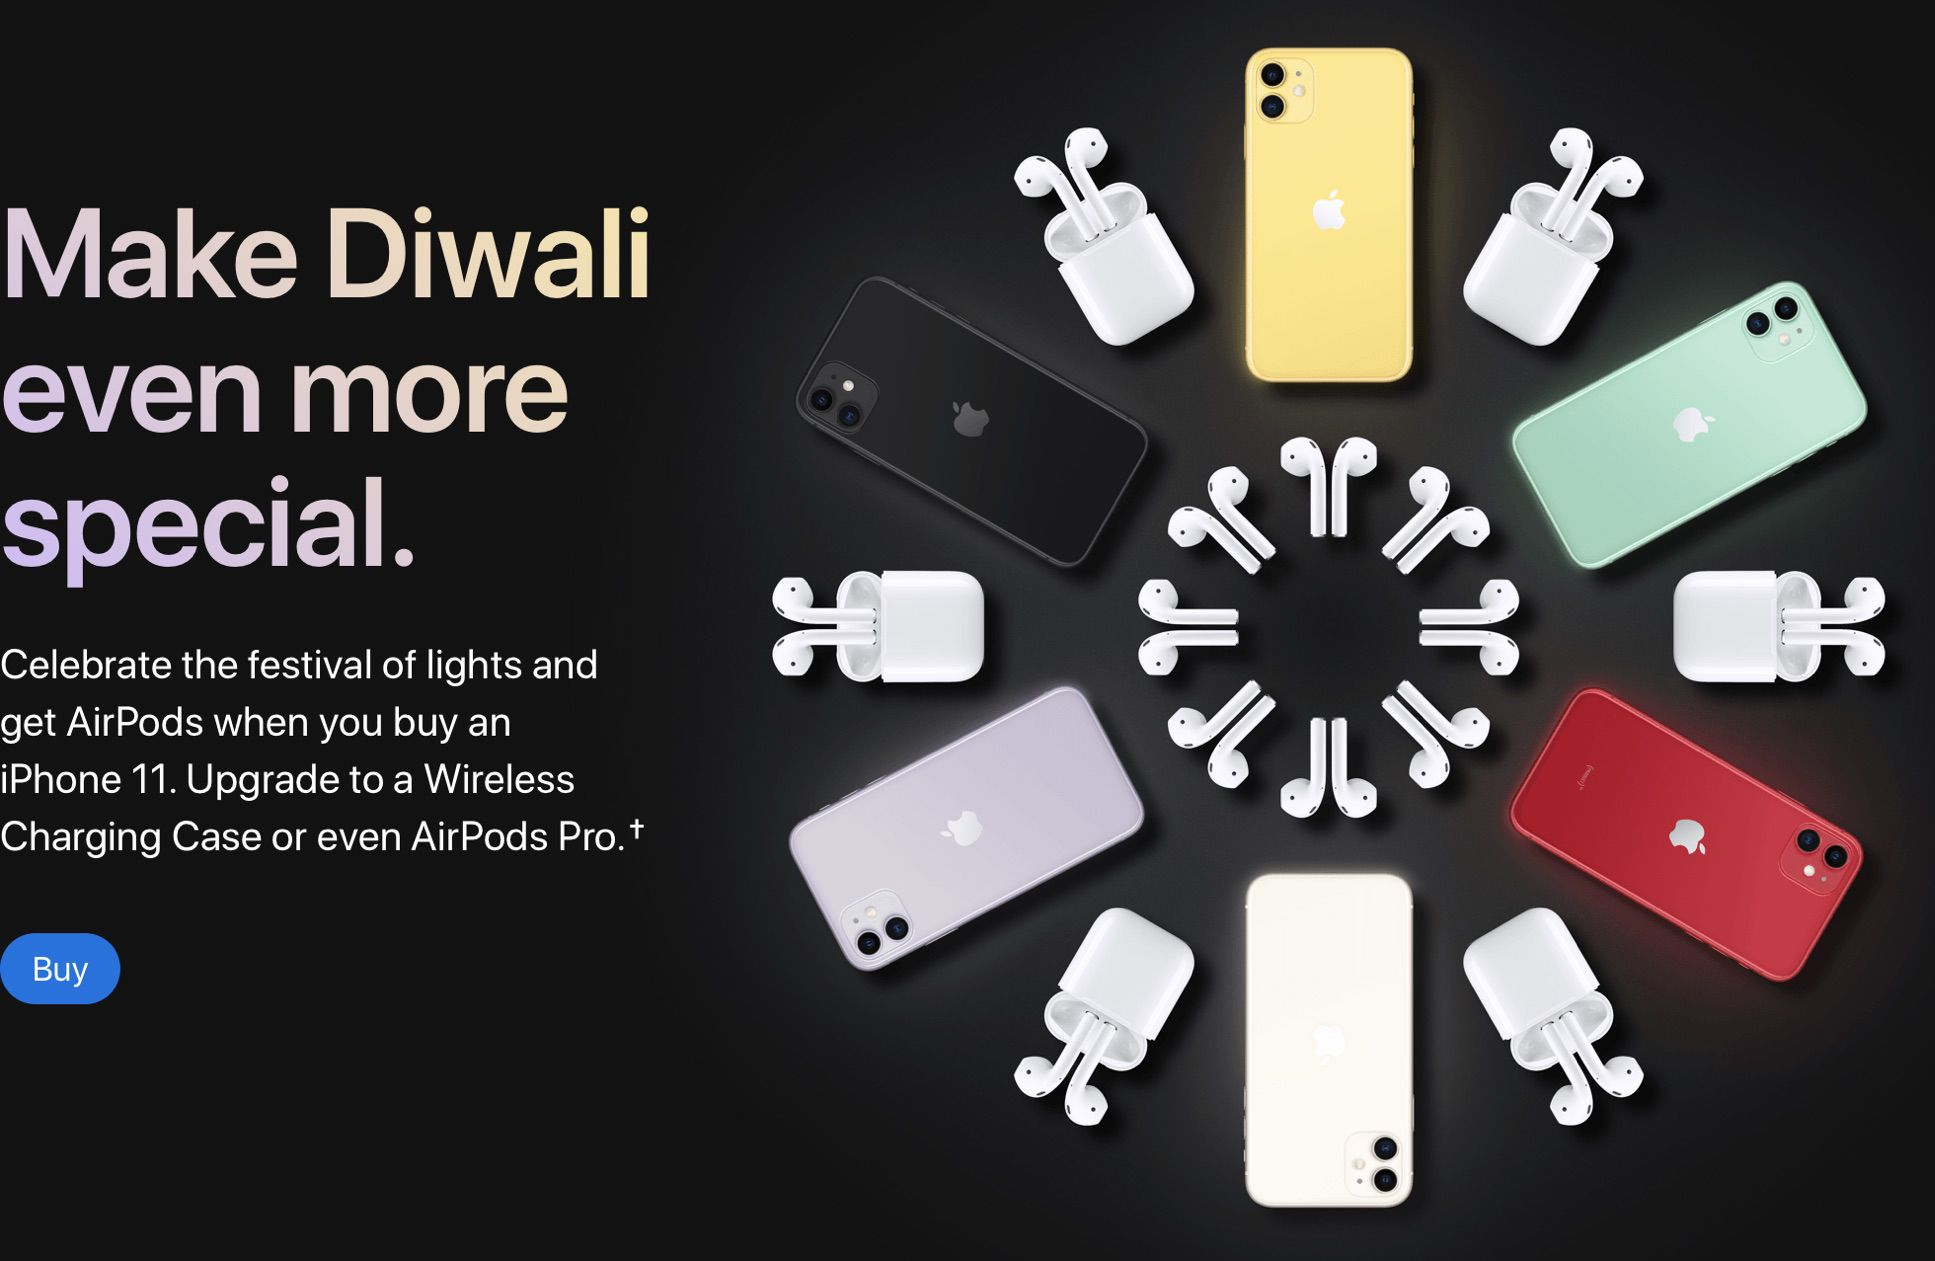 photo of Apple Offering Free AirPods With iPhone 11 Purchase in India as Part of Diwali Celebration image